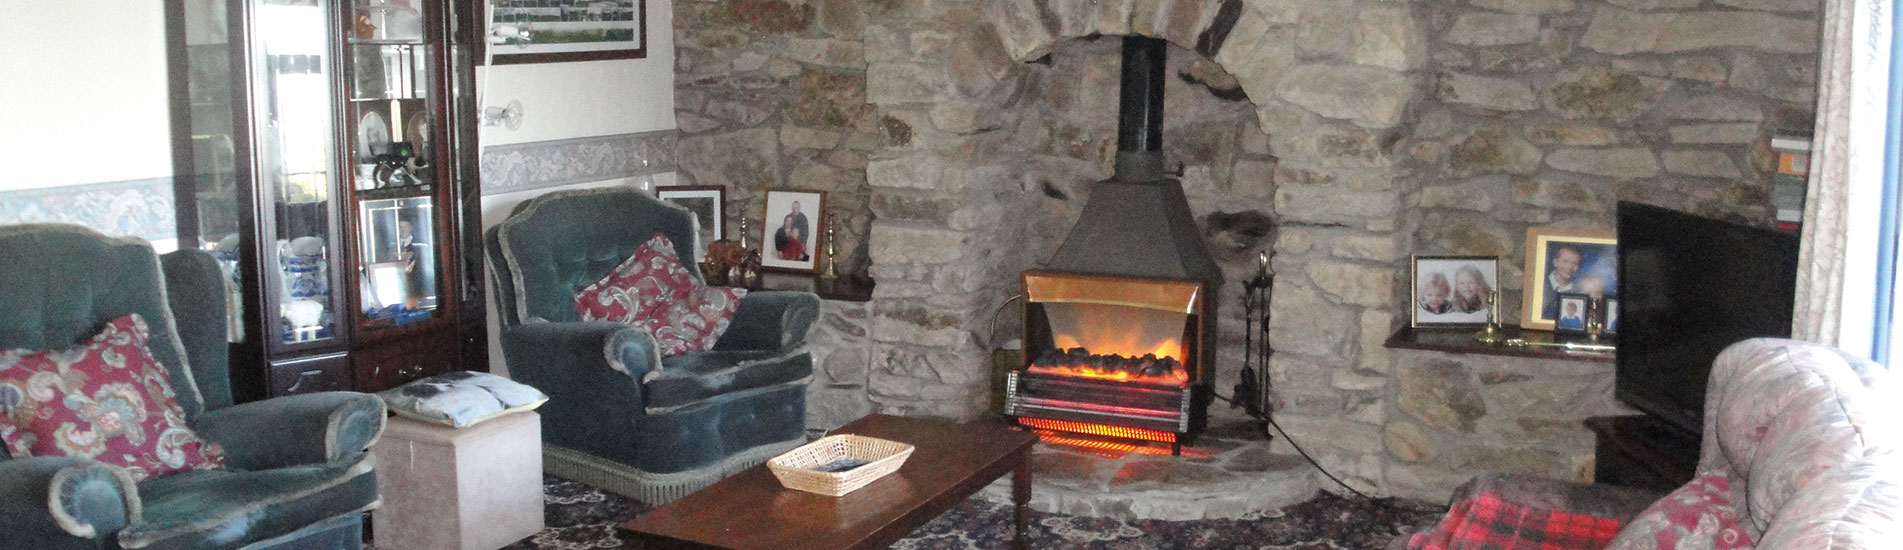 Kimbland Farm Lounge with Sky TV and Wood Burner